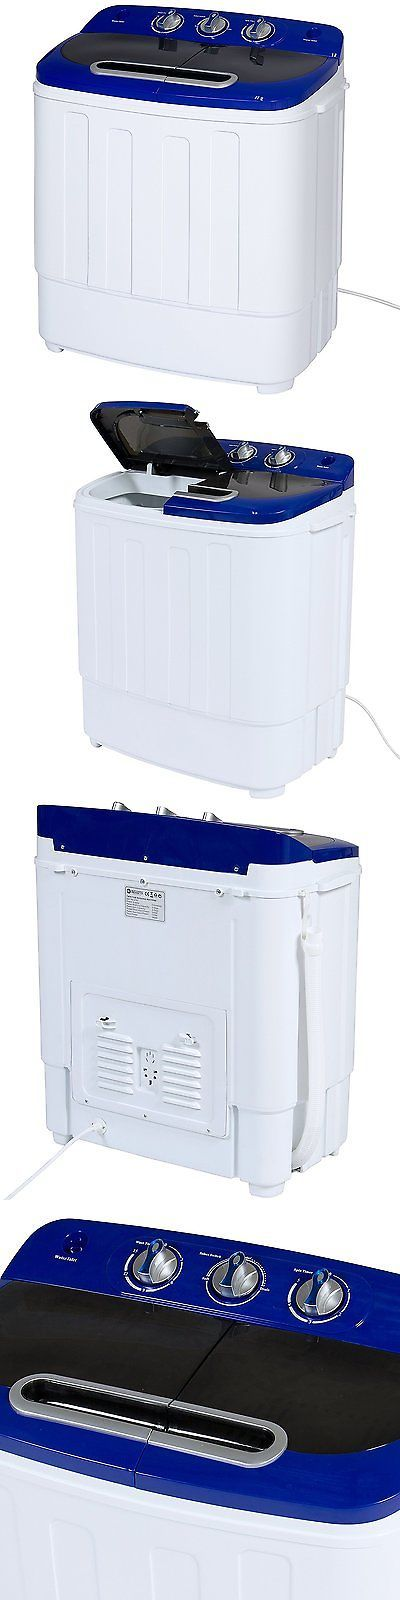 Washing Machines 71256: Best Choice Products Portable Compact Mini Twin Tub Washing Machine, Spin Cycle -> BUY IT NOW ONLY: $112.58 on eBay!